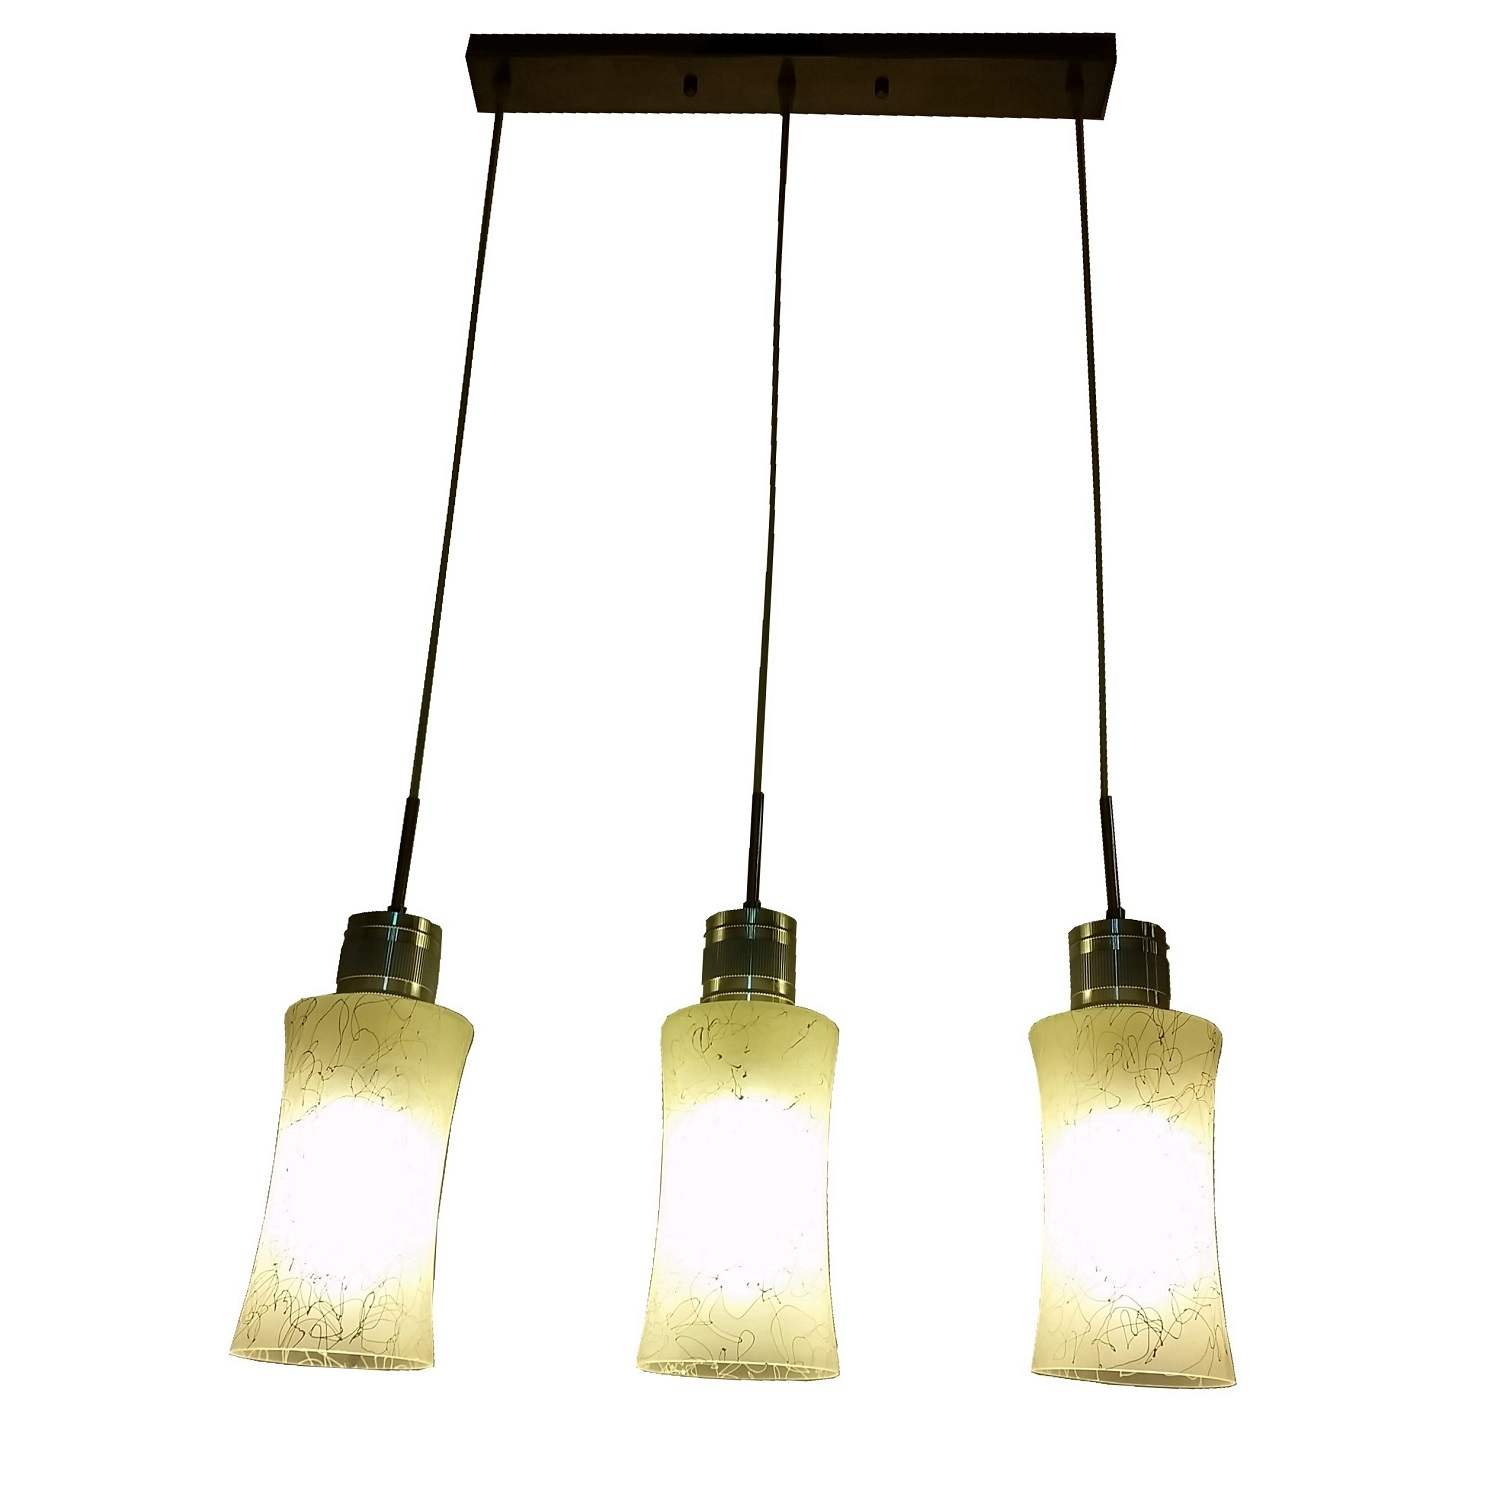 PL2020 3 Hanging Pendant Lamp L Brilliant Source Lighting